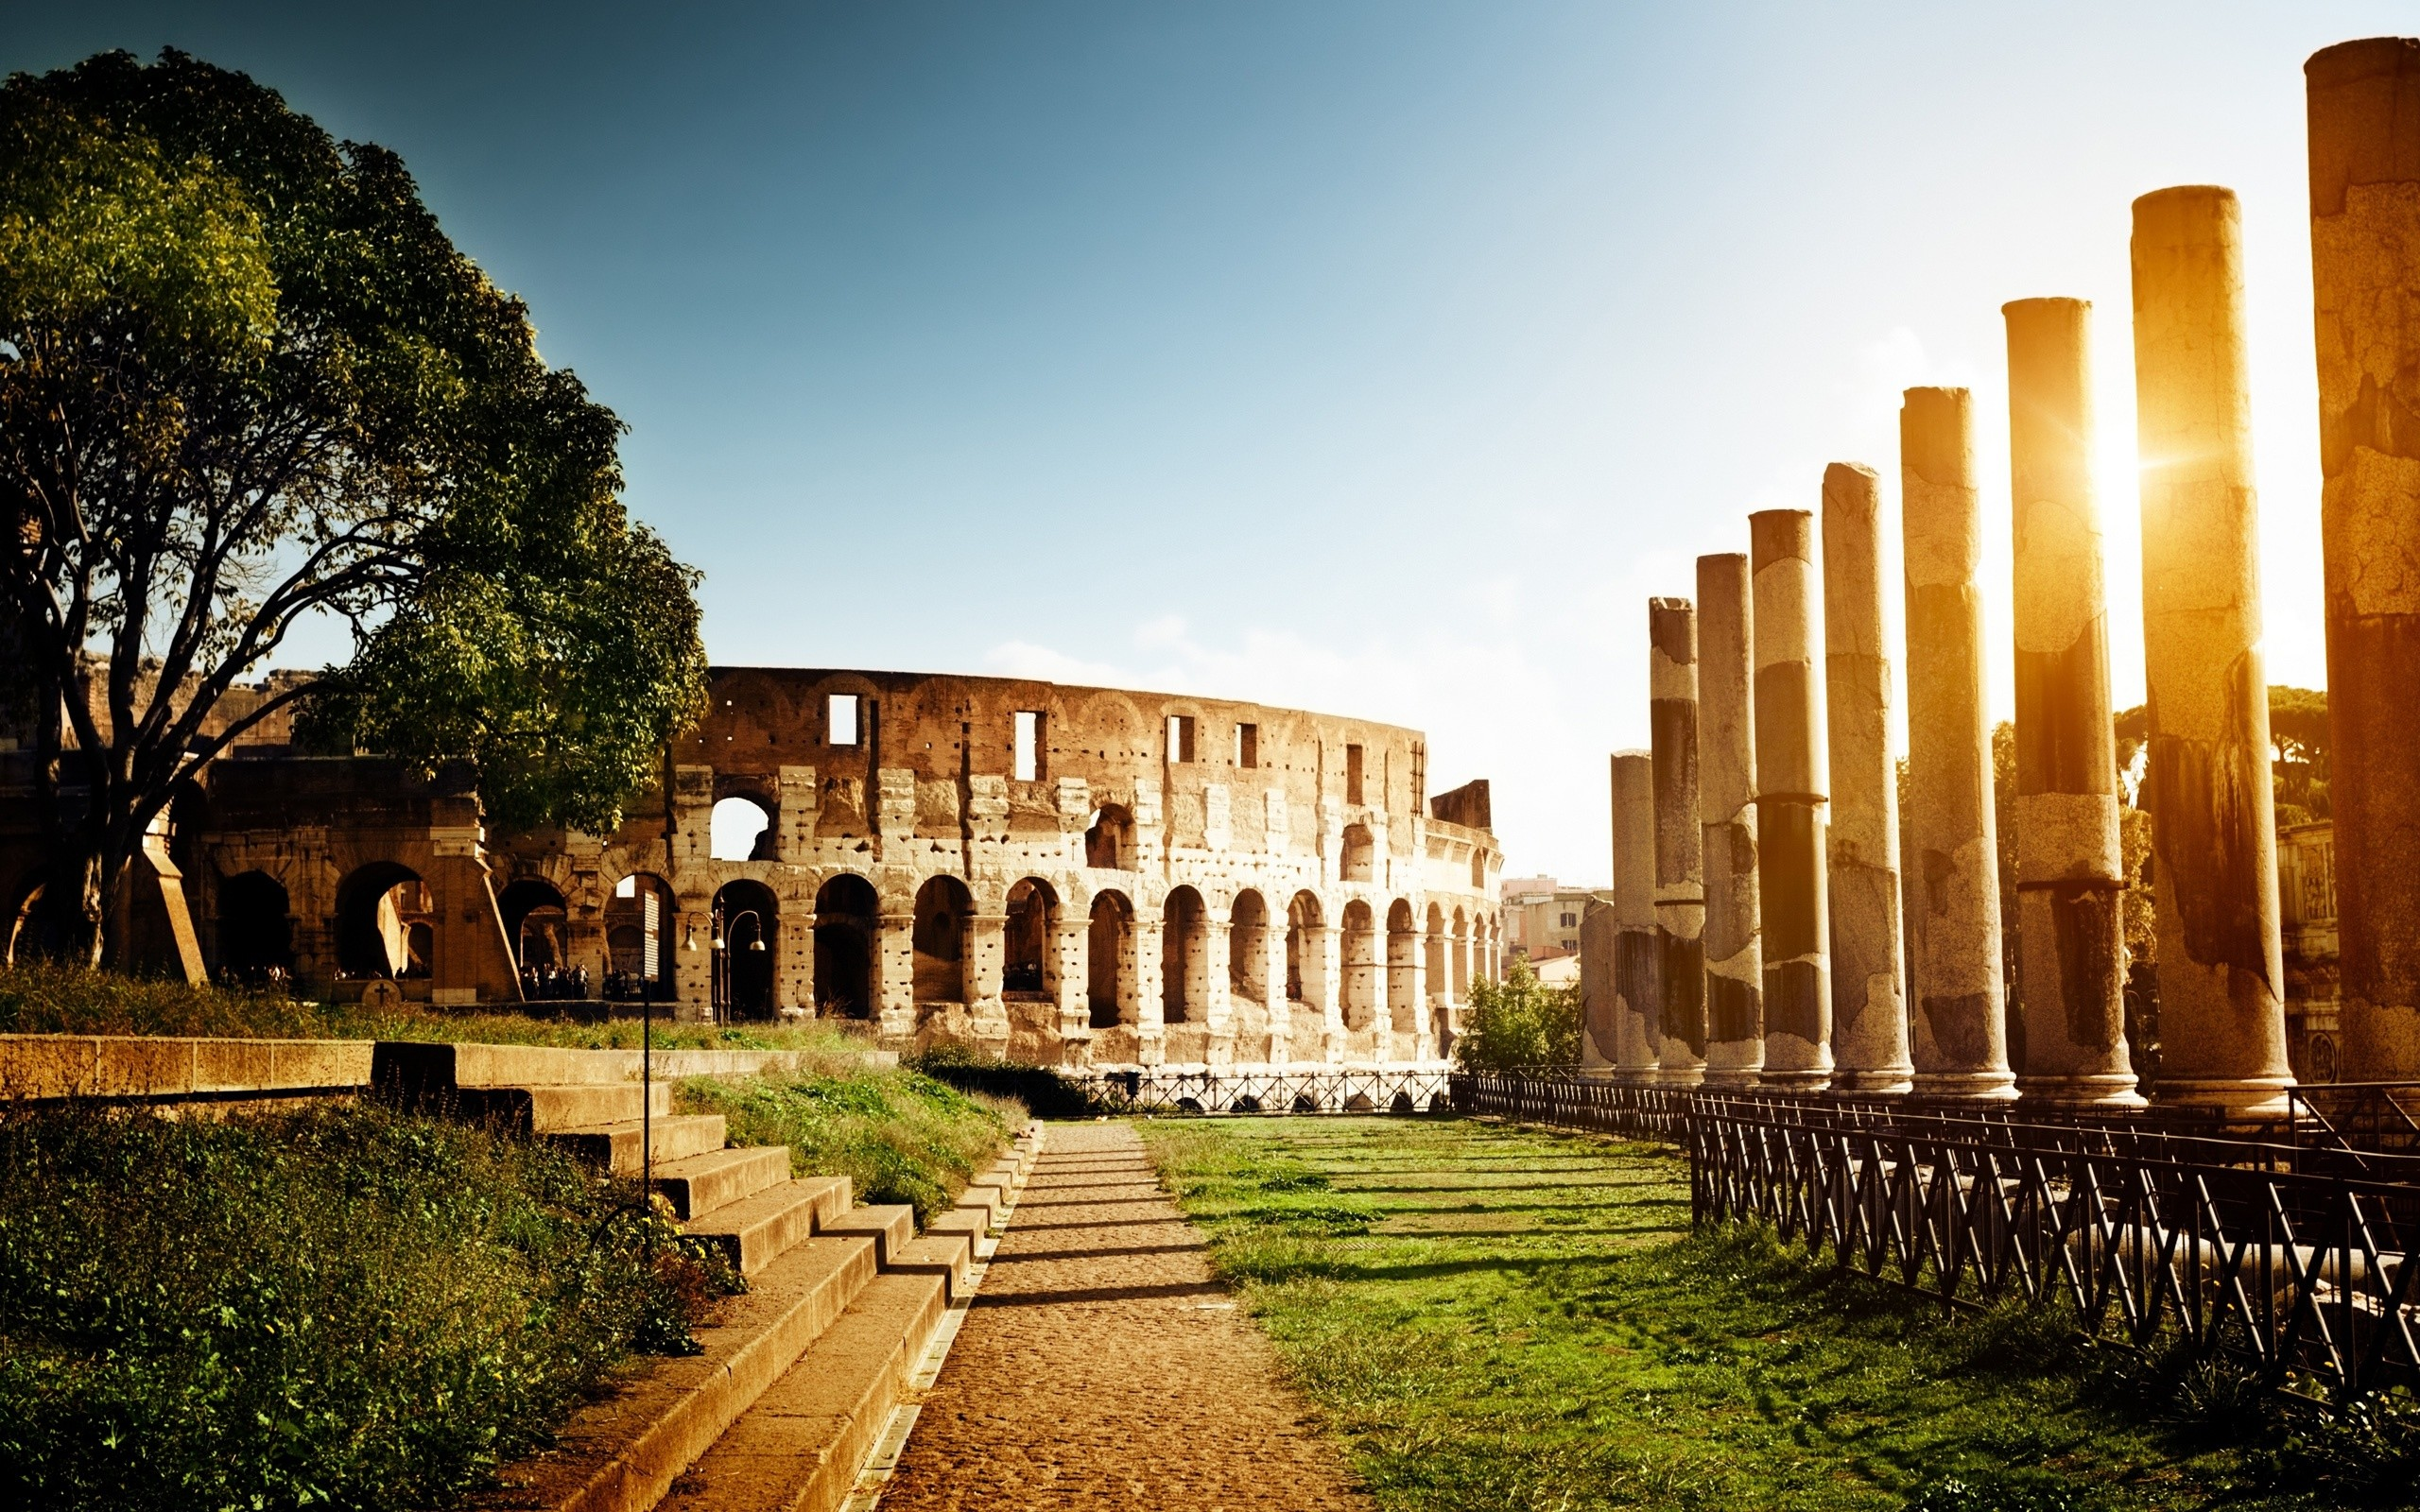 2560x1600 Google Image Result for http://best-wallpaper.net/wallpaper //1211/Colosseum-Italy-architecture-ruins-sun_.jpg | Old  Architechture ...